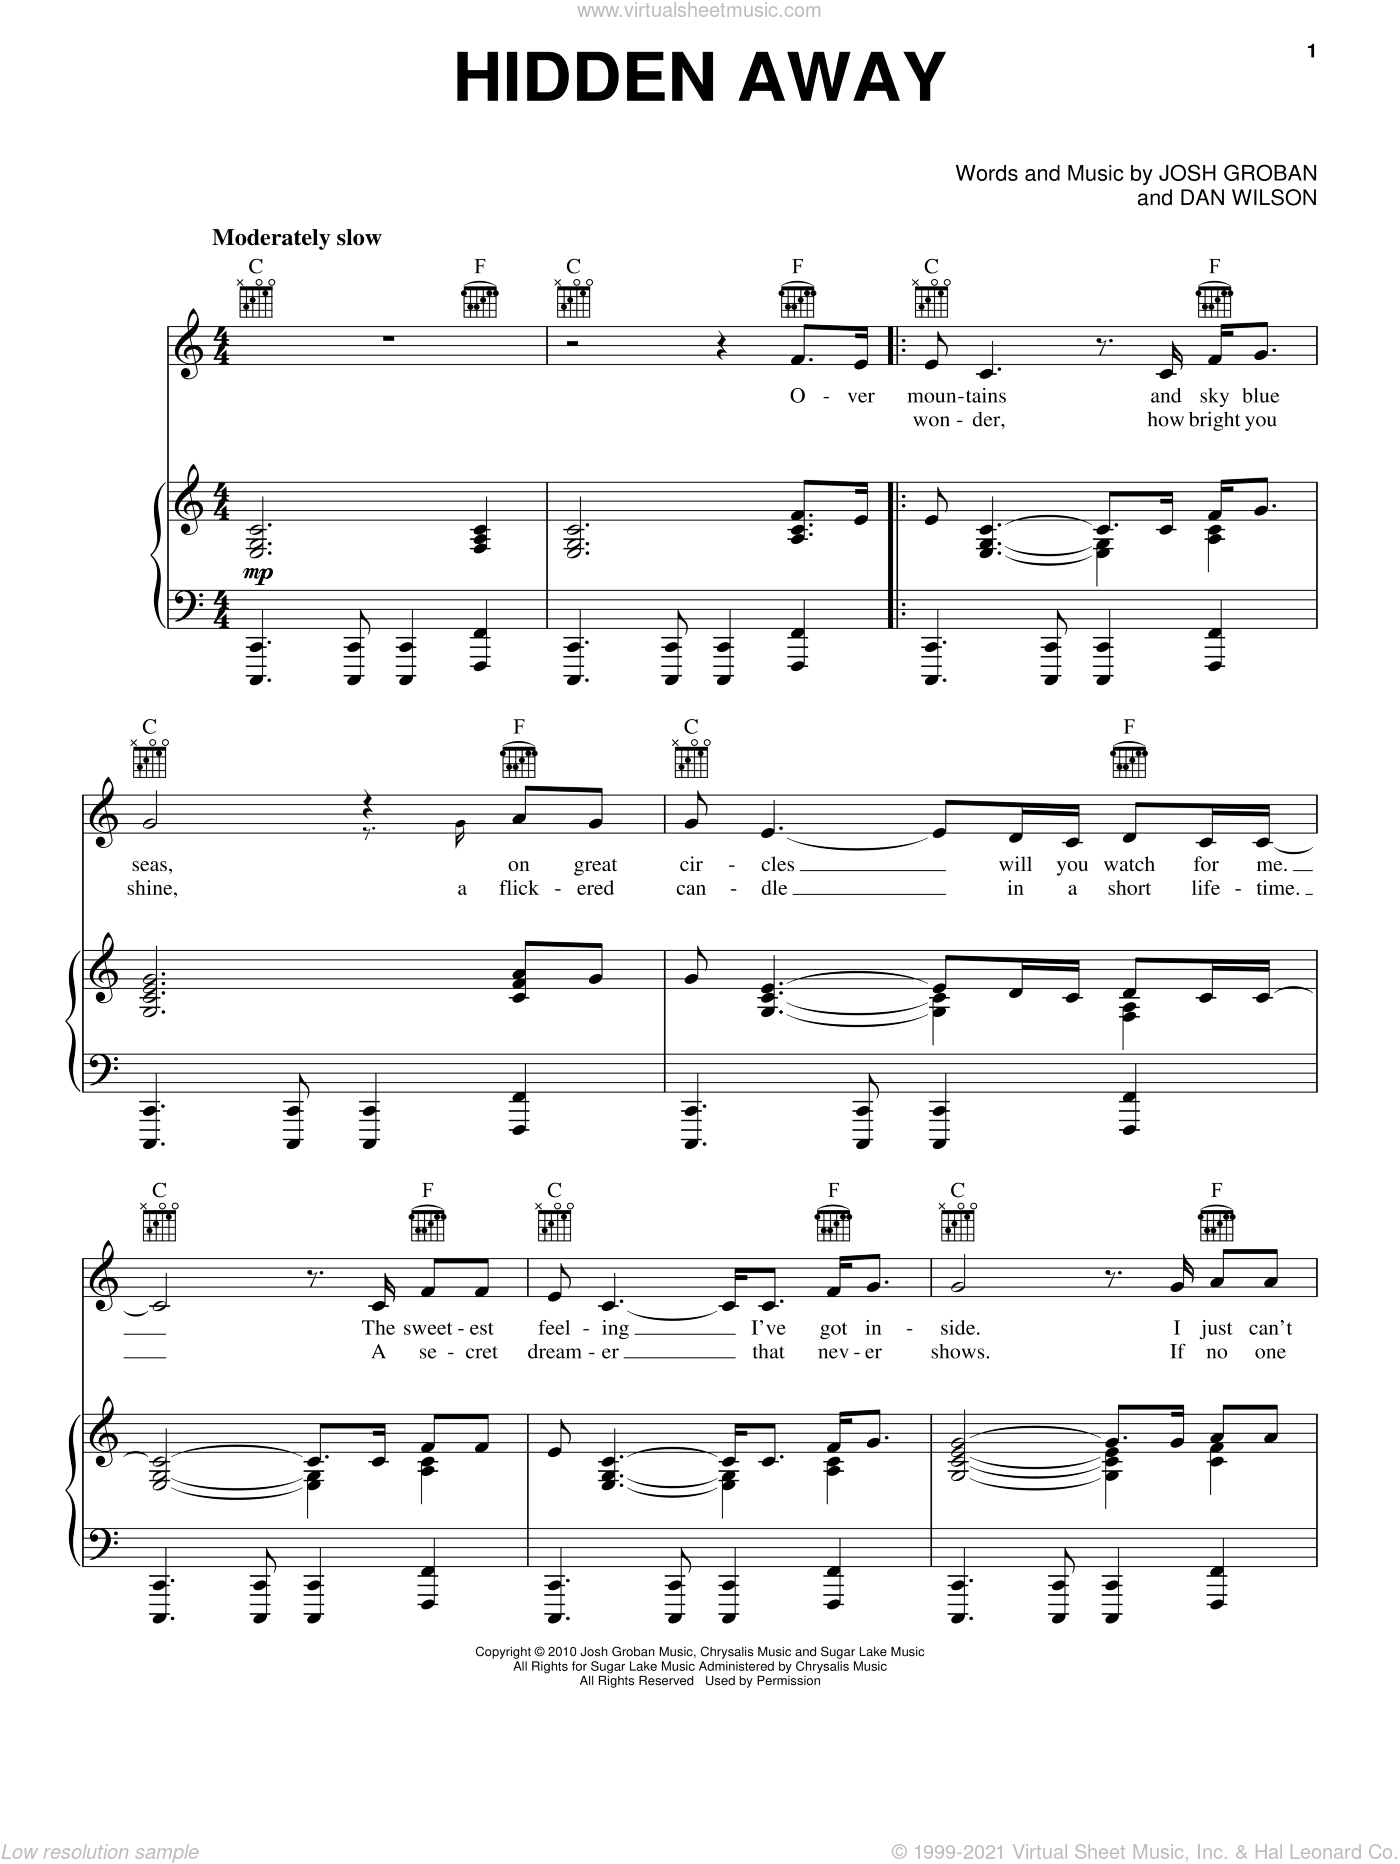 Hidden Away sheet music for voice, piano or guitar by Dan Wilson and Josh Groban. Score Image Preview.